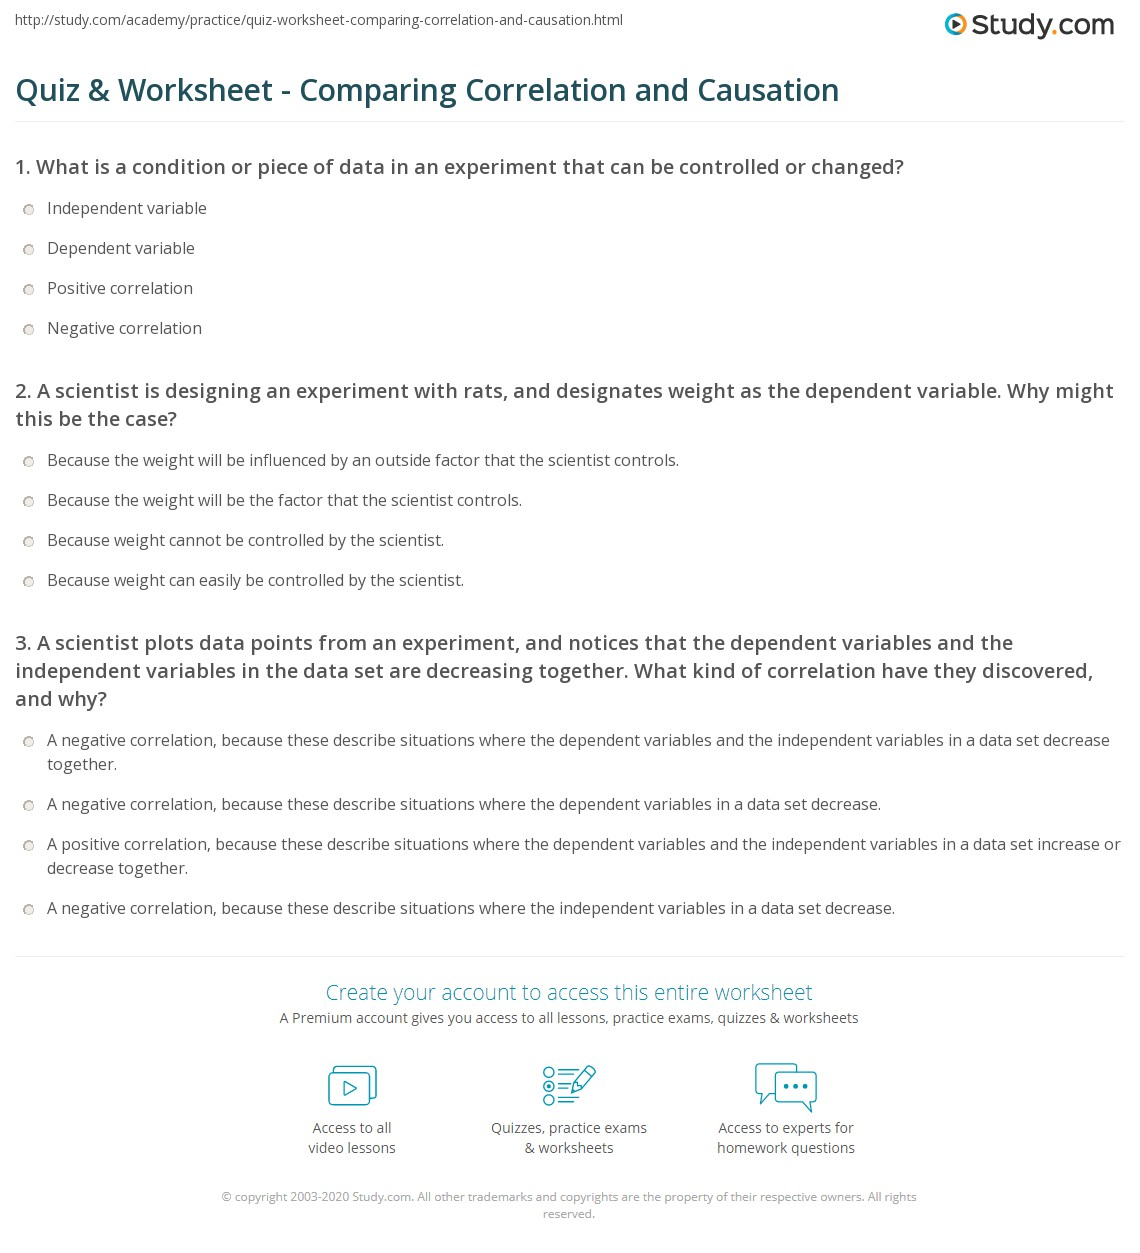 Aldiablosus  Inspiring Quiz Amp Worksheet  Comparing Correlation And Causation  Studycom With Luxury Print Correlation Vs Causation Differences Amp Definition Worksheet With Enchanting Practice Letters Worksheets Also Answers To Balancing Chemical Equations Worksheet In Addition Reflections Rotations And Translations Worksheets And Mean Median Mode And Range Worksheets With Answers As Well As Two Digit Addition Without Regrouping Worksheet Additionally Letter Trace Worksheet From Studycom With Aldiablosus  Luxury Quiz Amp Worksheet  Comparing Correlation And Causation  Studycom With Enchanting Print Correlation Vs Causation Differences Amp Definition Worksheet And Inspiring Practice Letters Worksheets Also Answers To Balancing Chemical Equations Worksheet In Addition Reflections Rotations And Translations Worksheets From Studycom